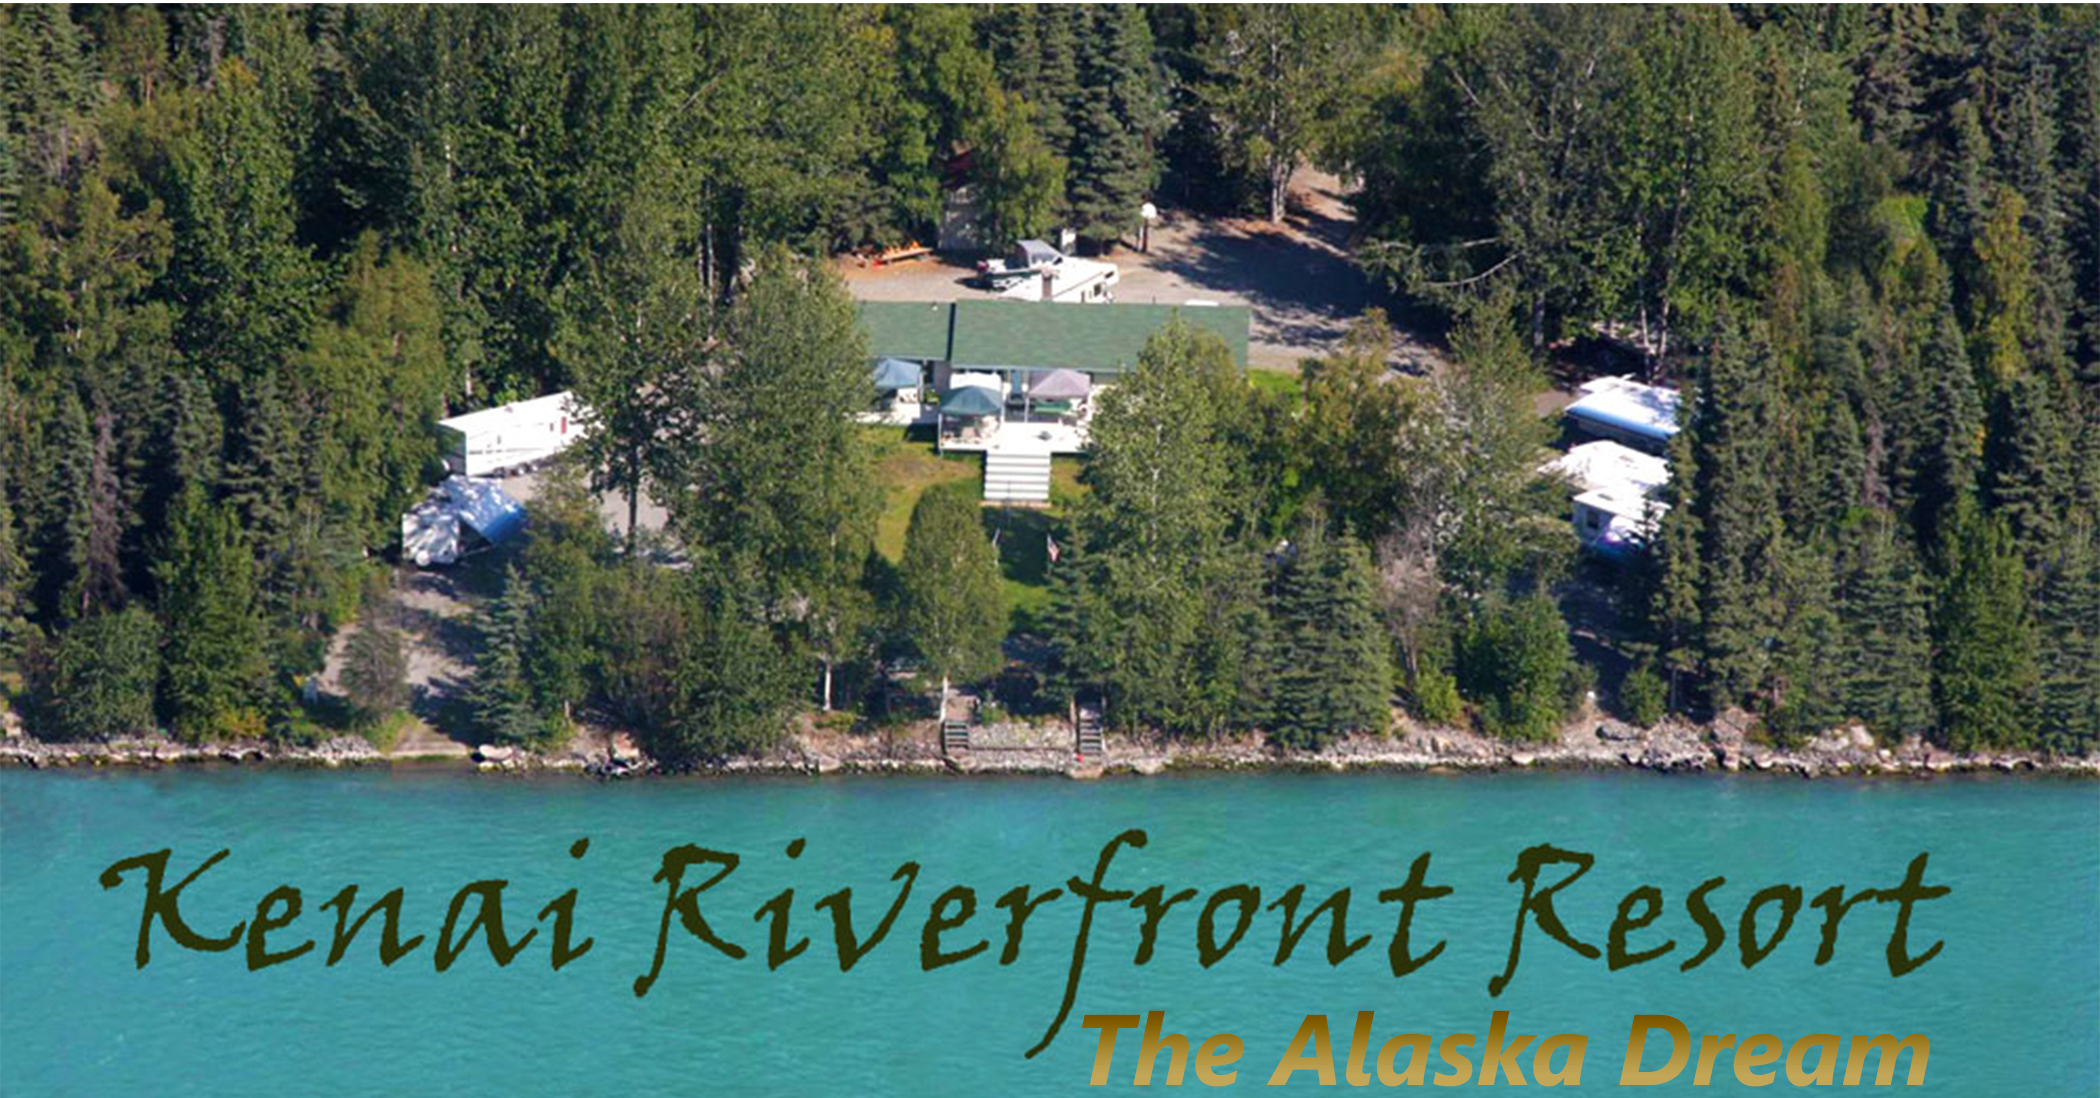 Kenai Riverfront Resort | The Alaska Dream | Lodging, Fishing & RV Park on Alaska's Kenai River, Soldotna, Alaska